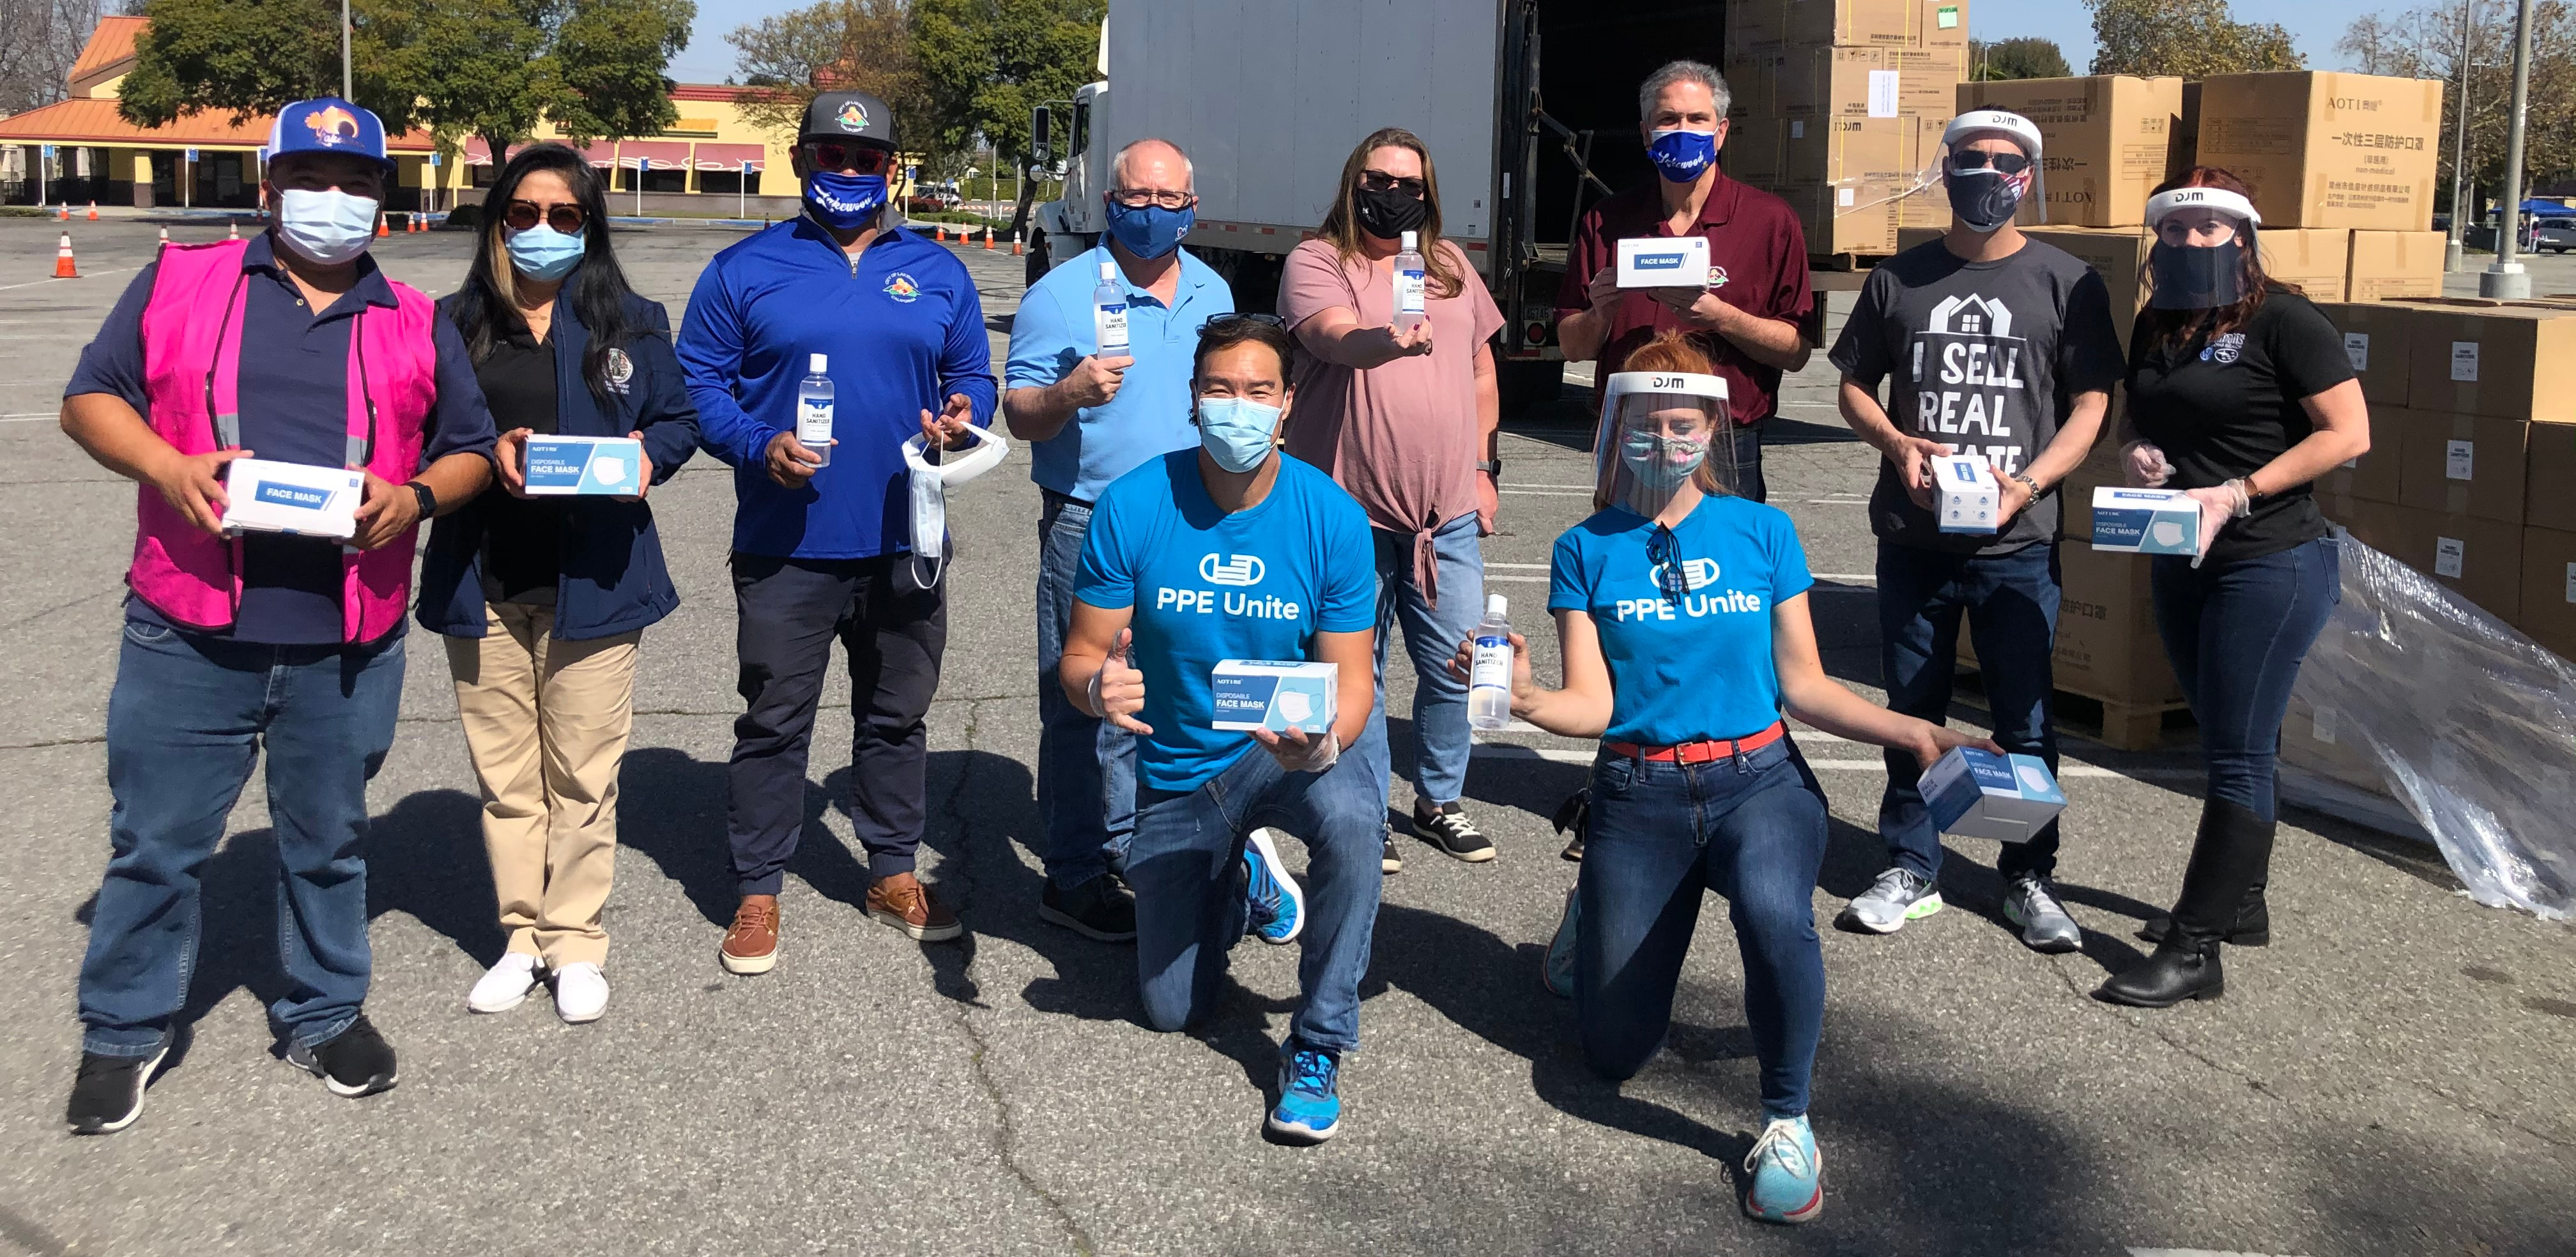 Timmons Subaru helps distribute PPE to local Businesses through PPE Unite